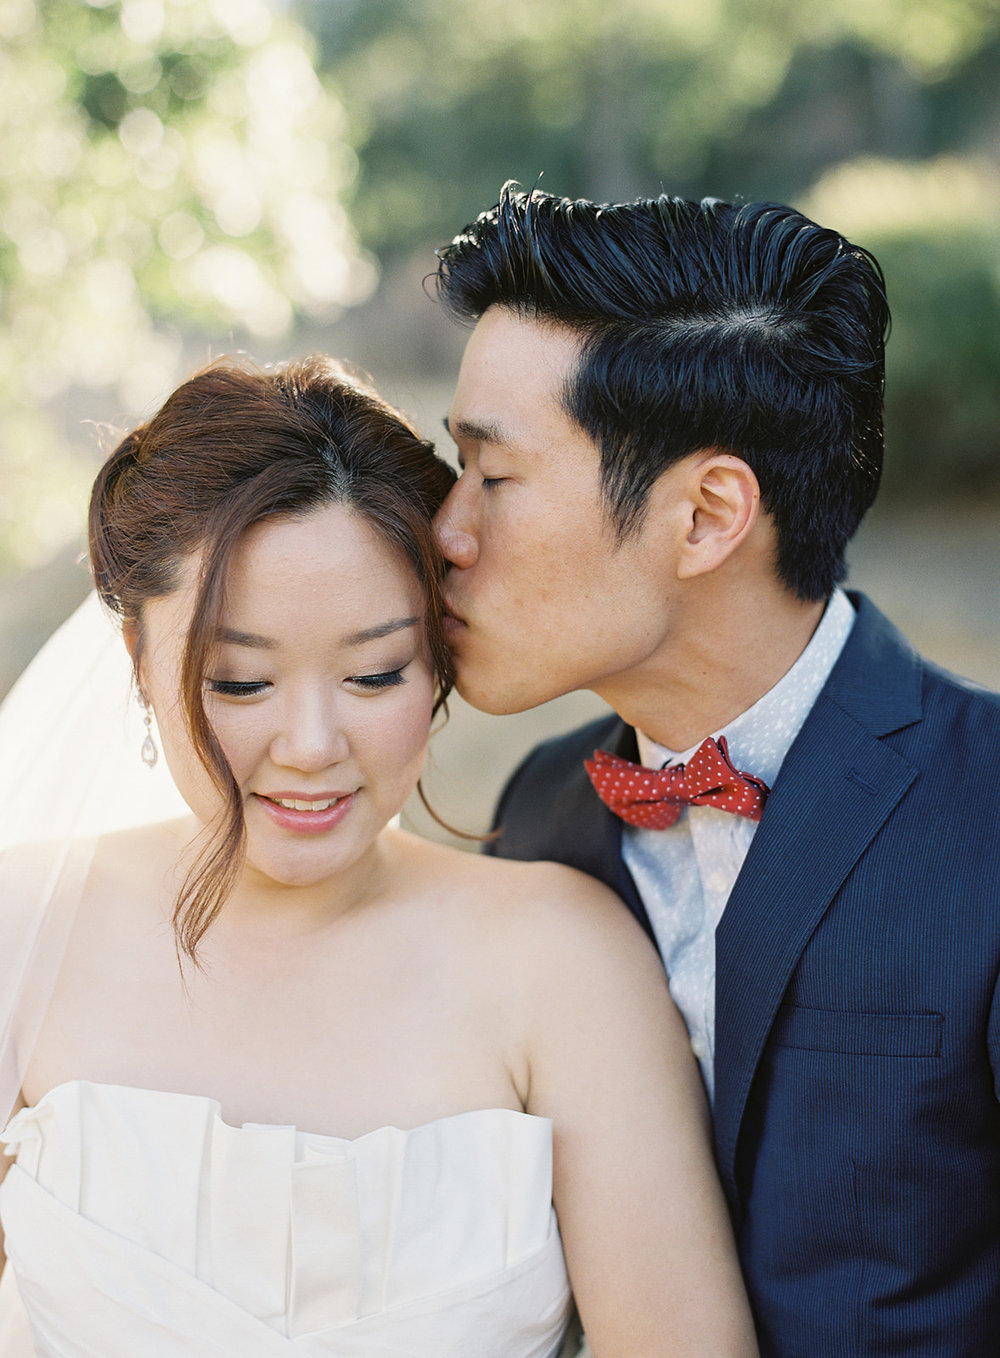 Nathalie Cheng Photography_Soyoung_Engagement_030.jpg